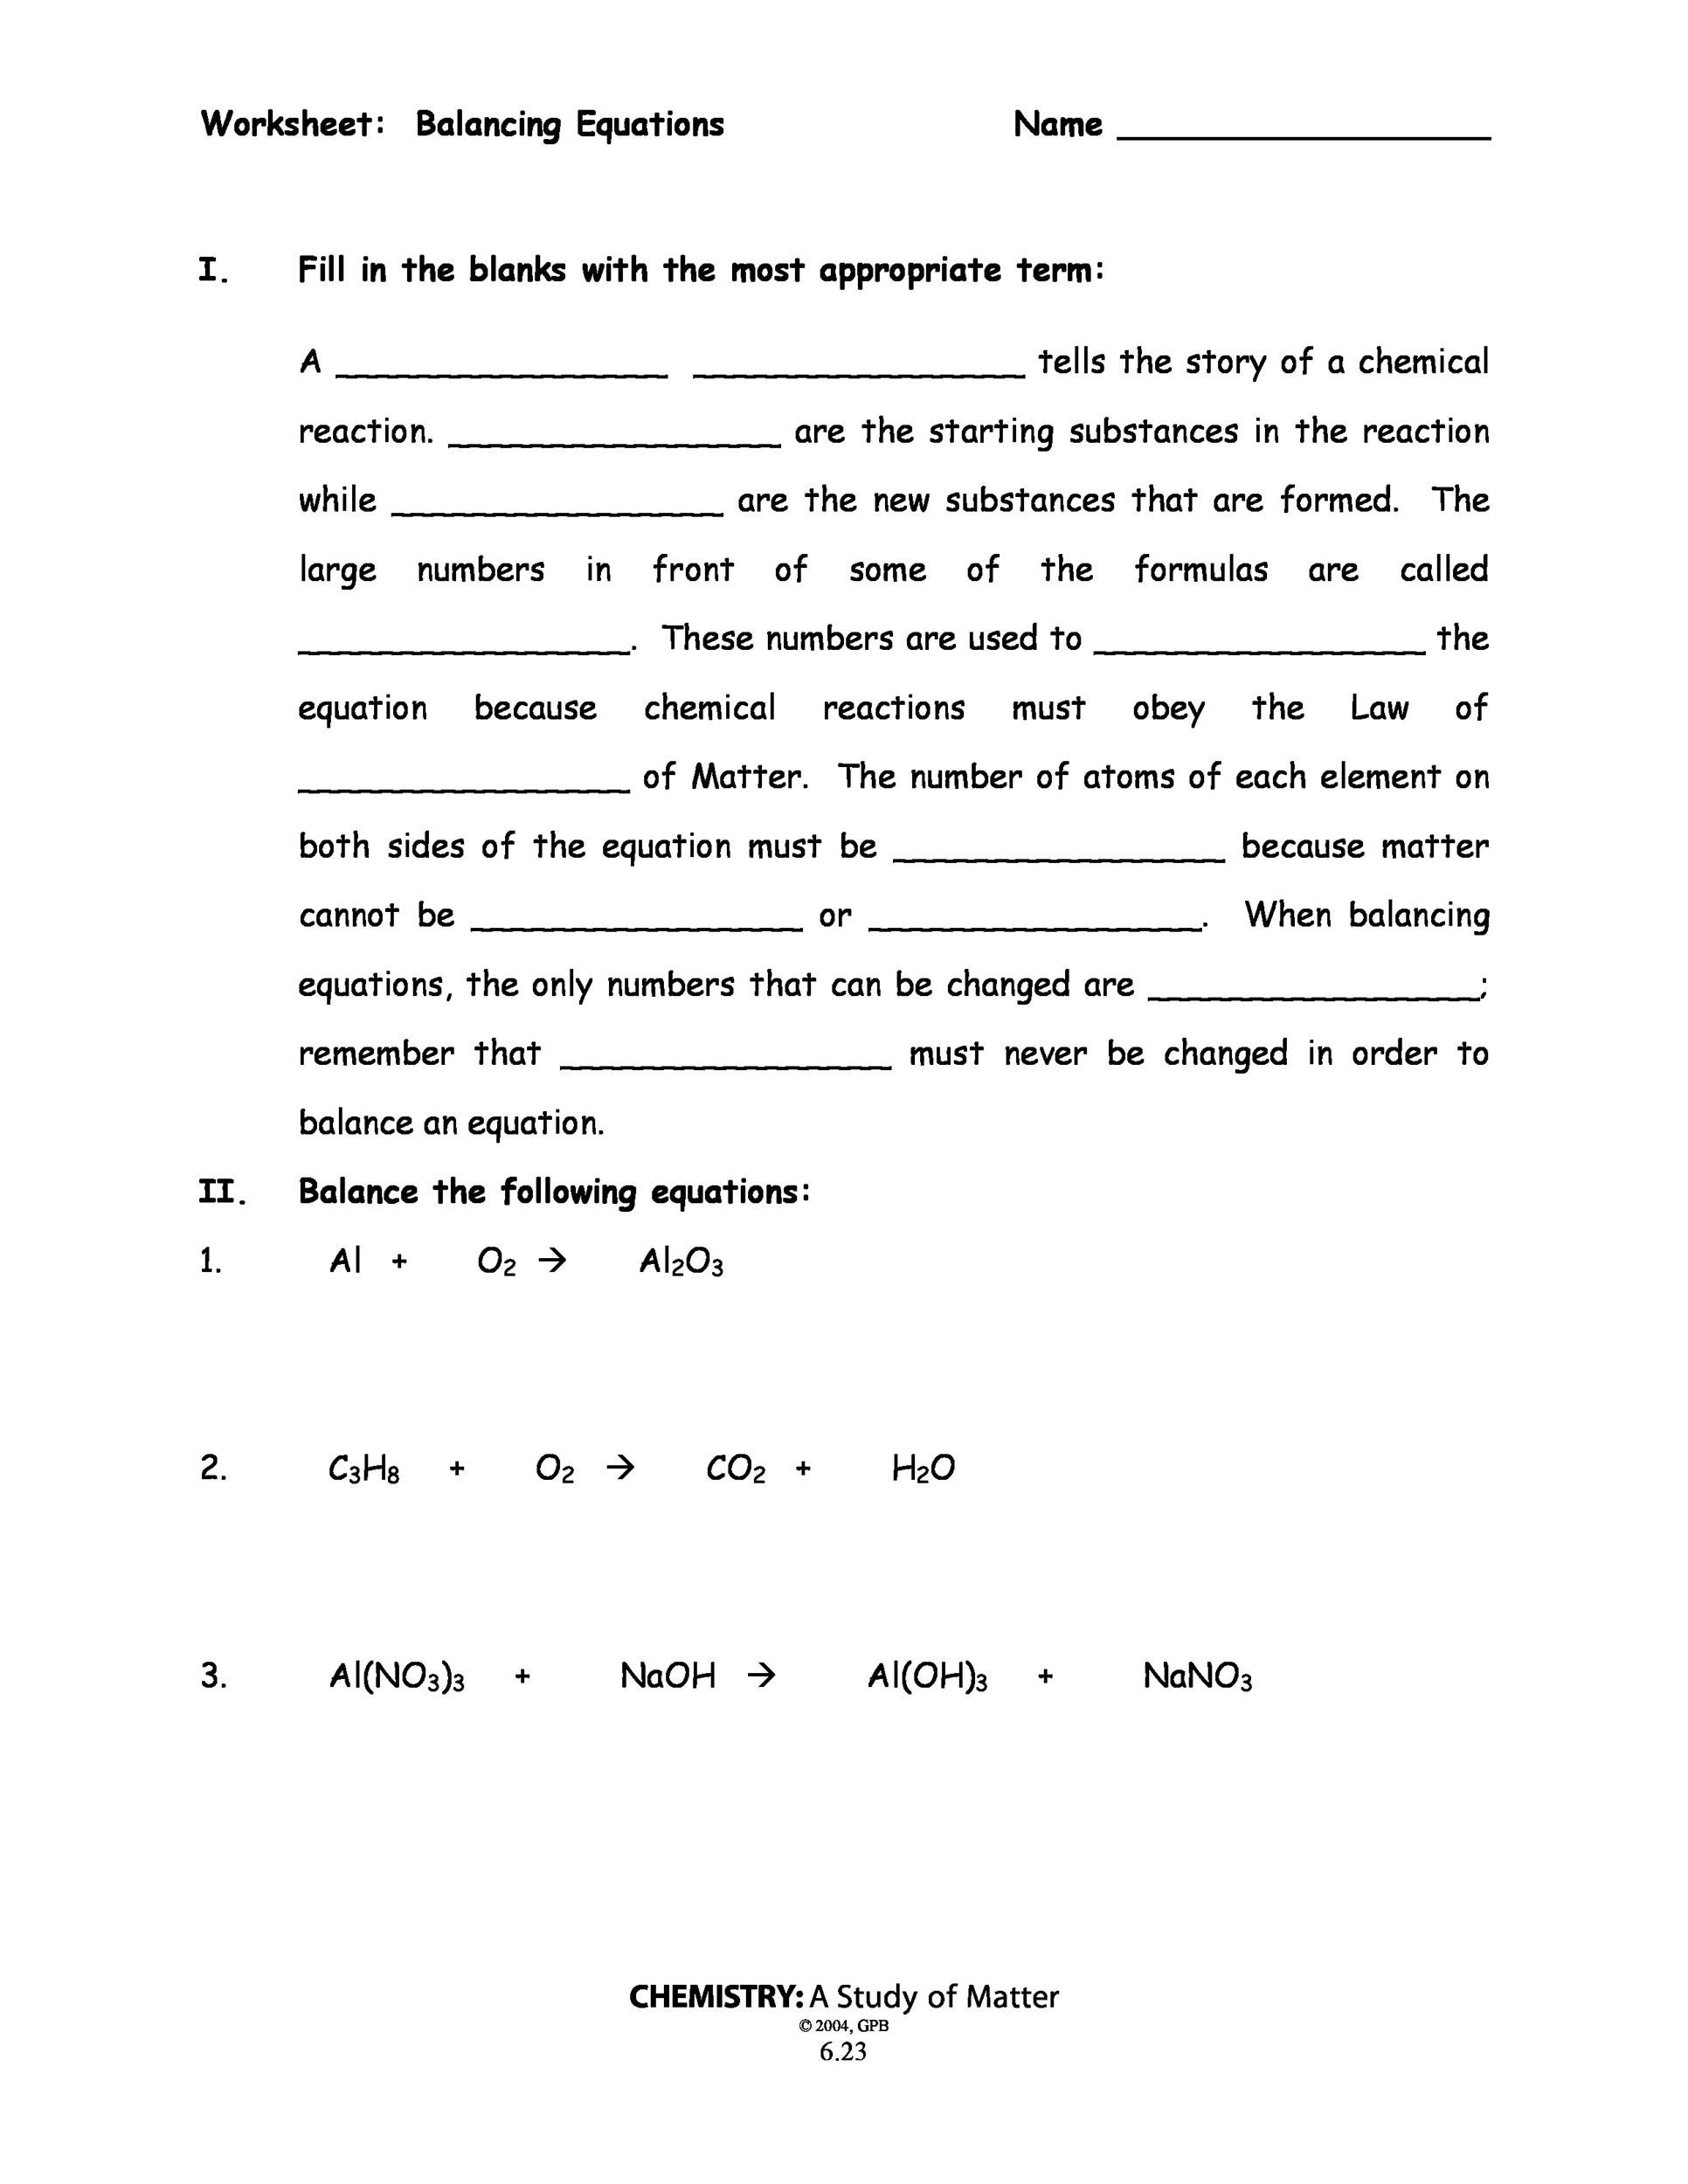 Balancing Chemical Equations Worksheet 2 Answers Delibertad – Balancing Equations Worksheet Answers